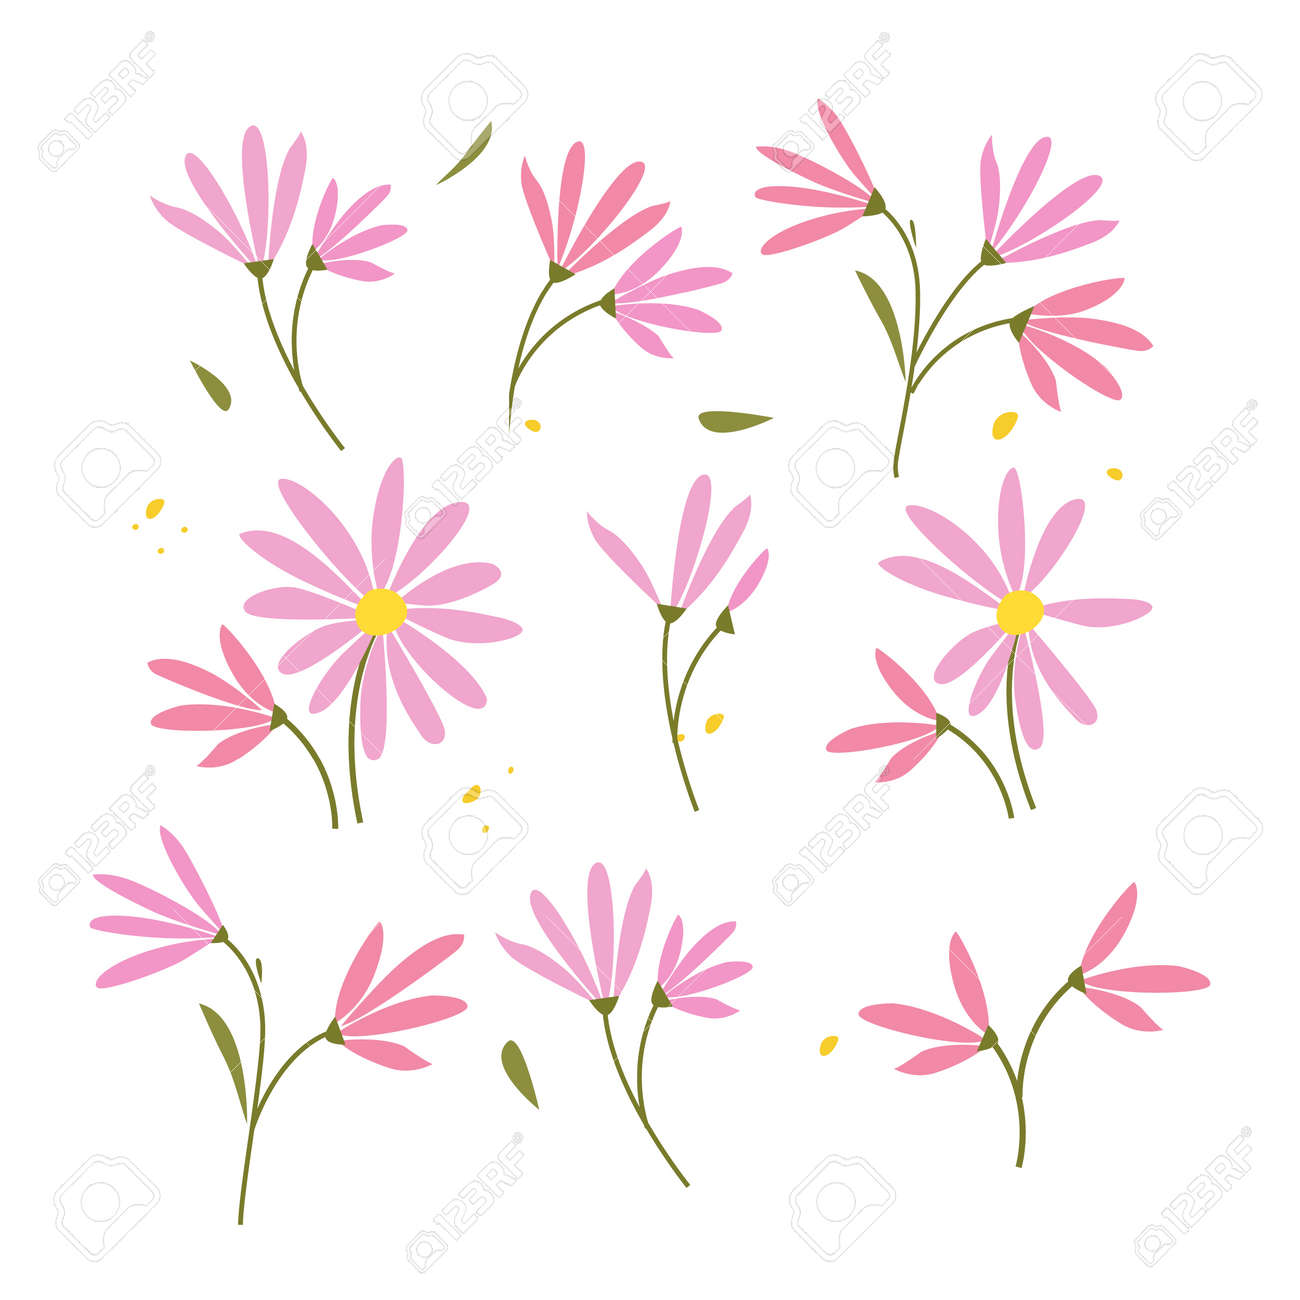 Collection of hand drawn plants. Botanical set of sketch flowers and branches, vector illustrations - 171530277